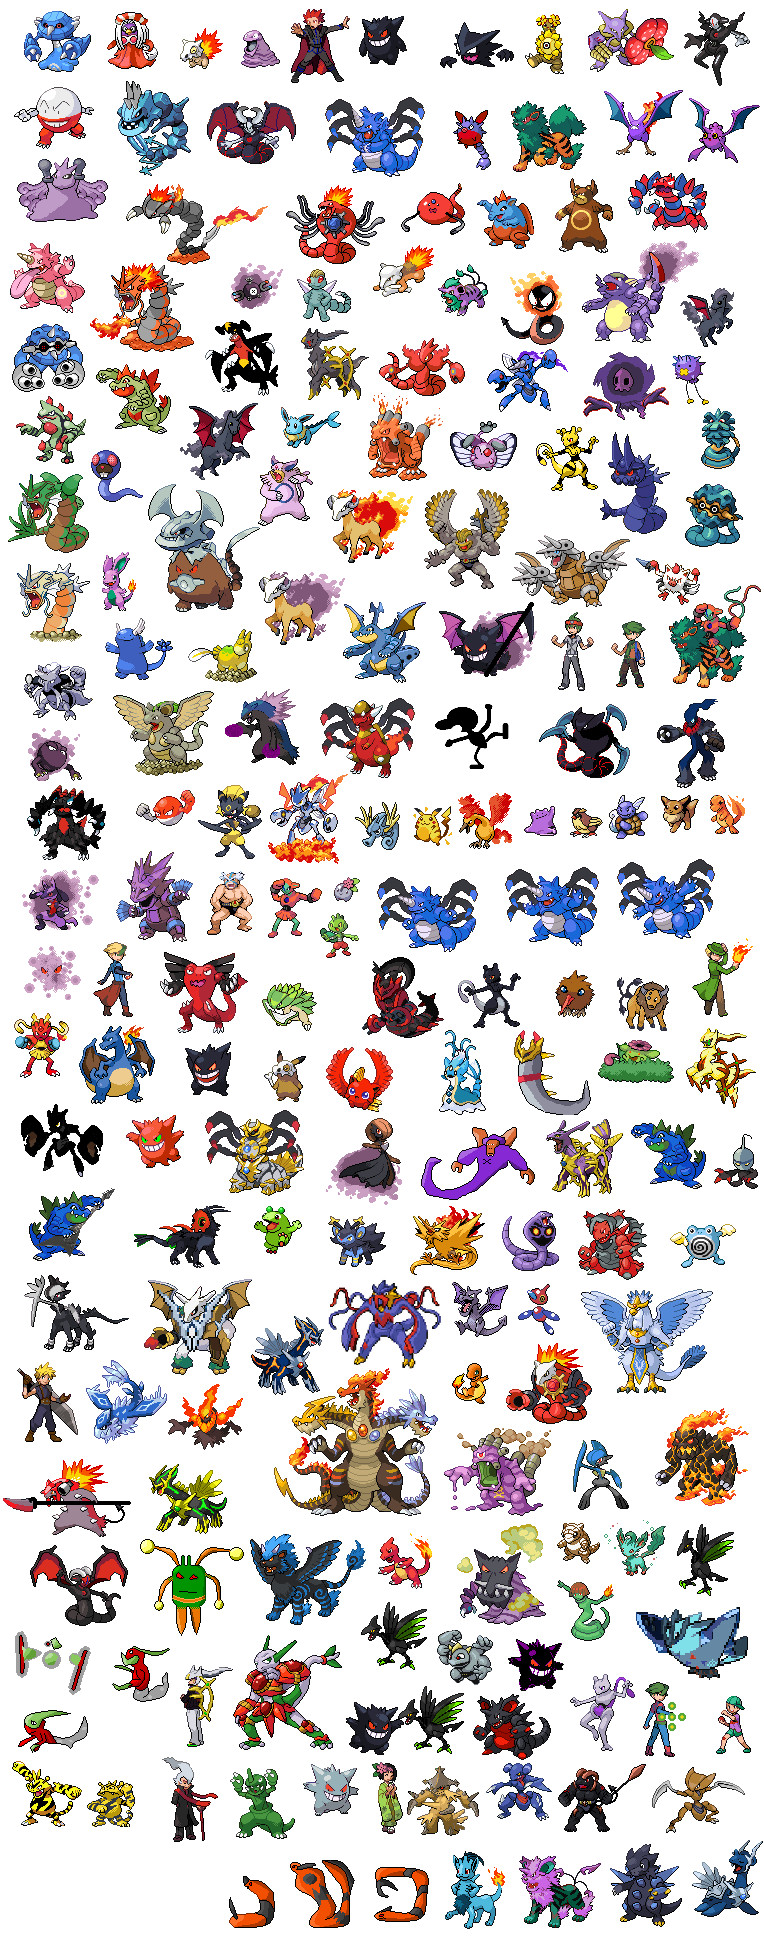 All my sprites by Evilzombie400